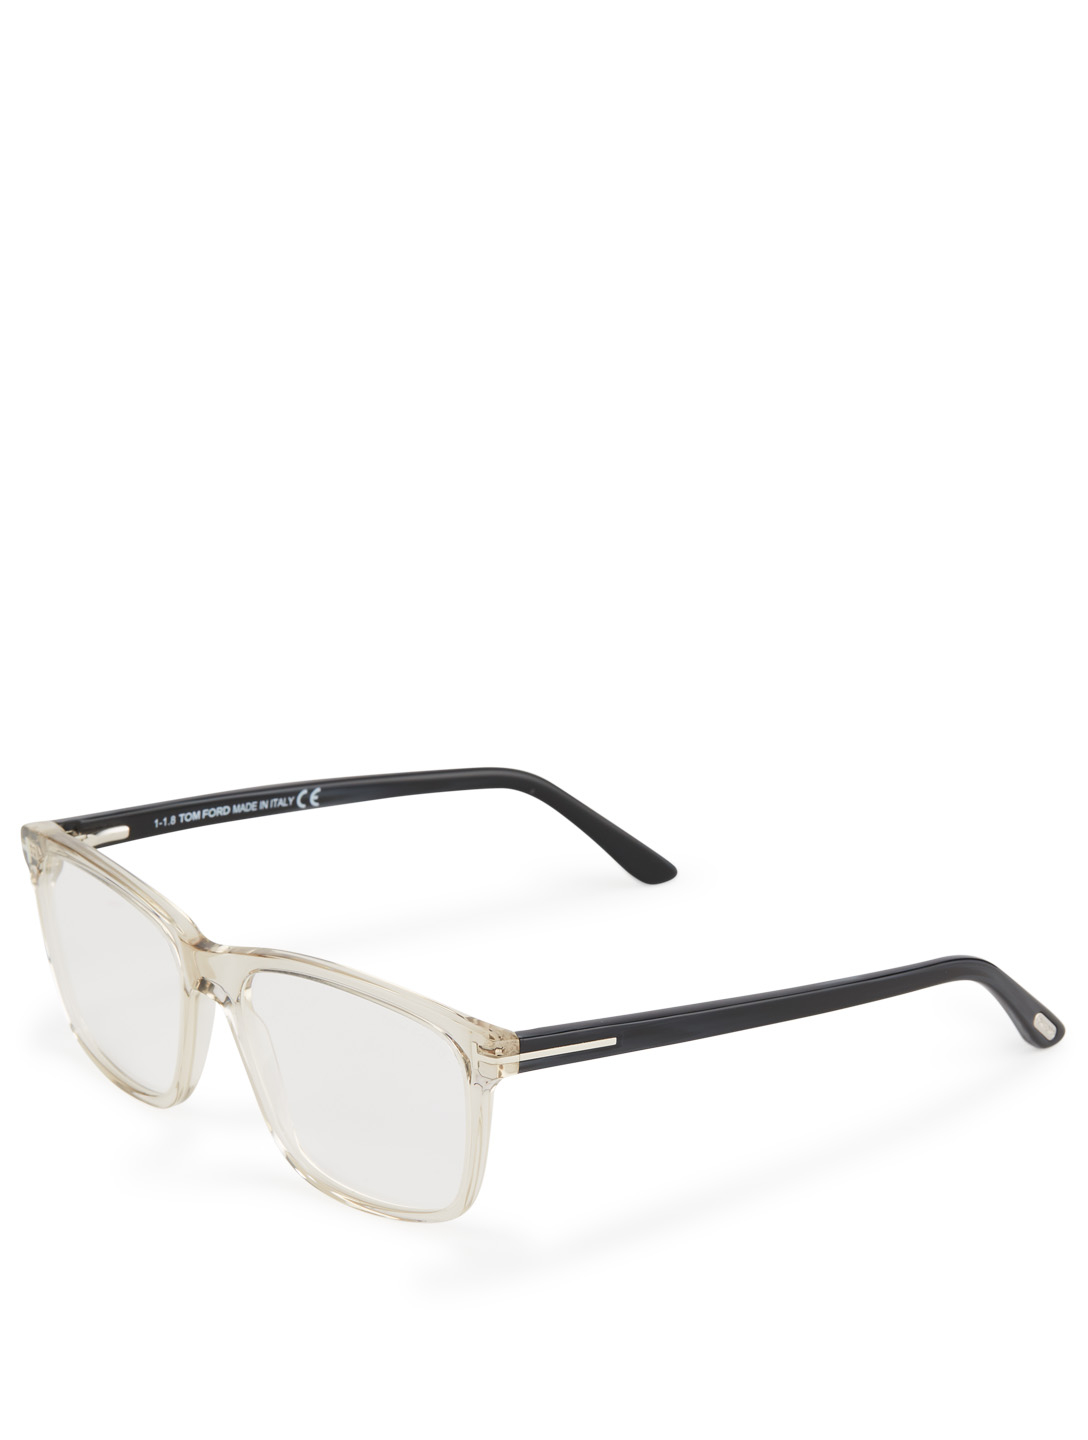 TOM FORD Lunettes rectangulaires Hommes Blanc